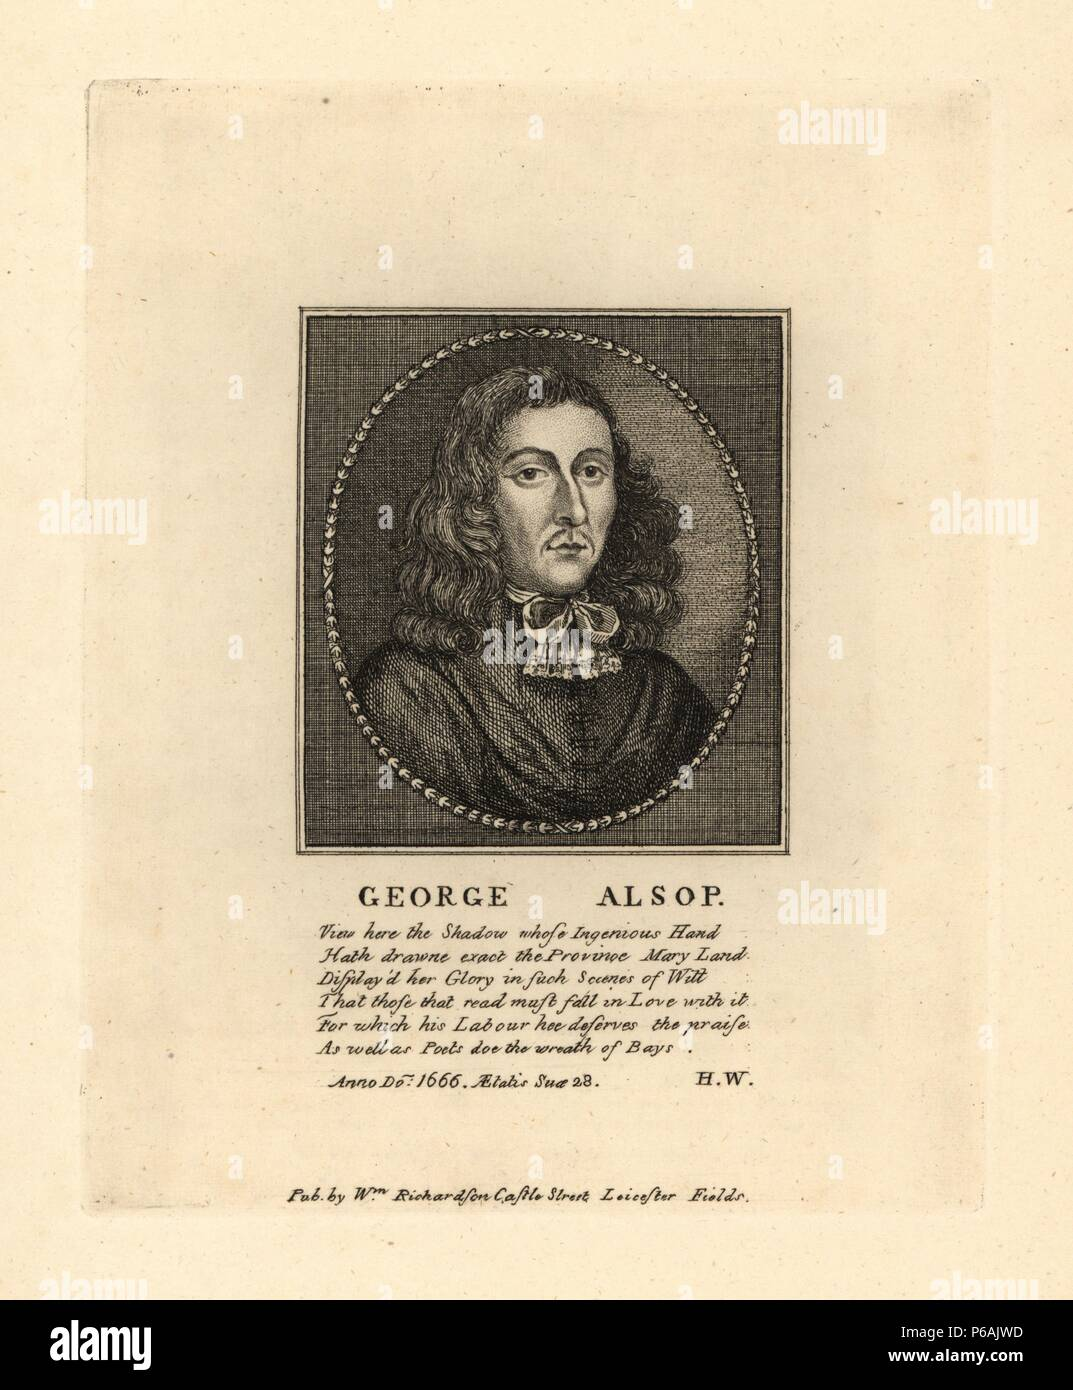 """George Alsop, aged 28, author of """"A Character of the Province of Maryland,"""" 1666. Copperplate engraving from Richardson's """"Portraits illustrating Granger's Biographical History of England,"""" London, 1792–1812. Published by William Richardson, printseller, London. James Granger (1723–1776) was an English clergyman, biographer, and print collector. Stock Photo"""